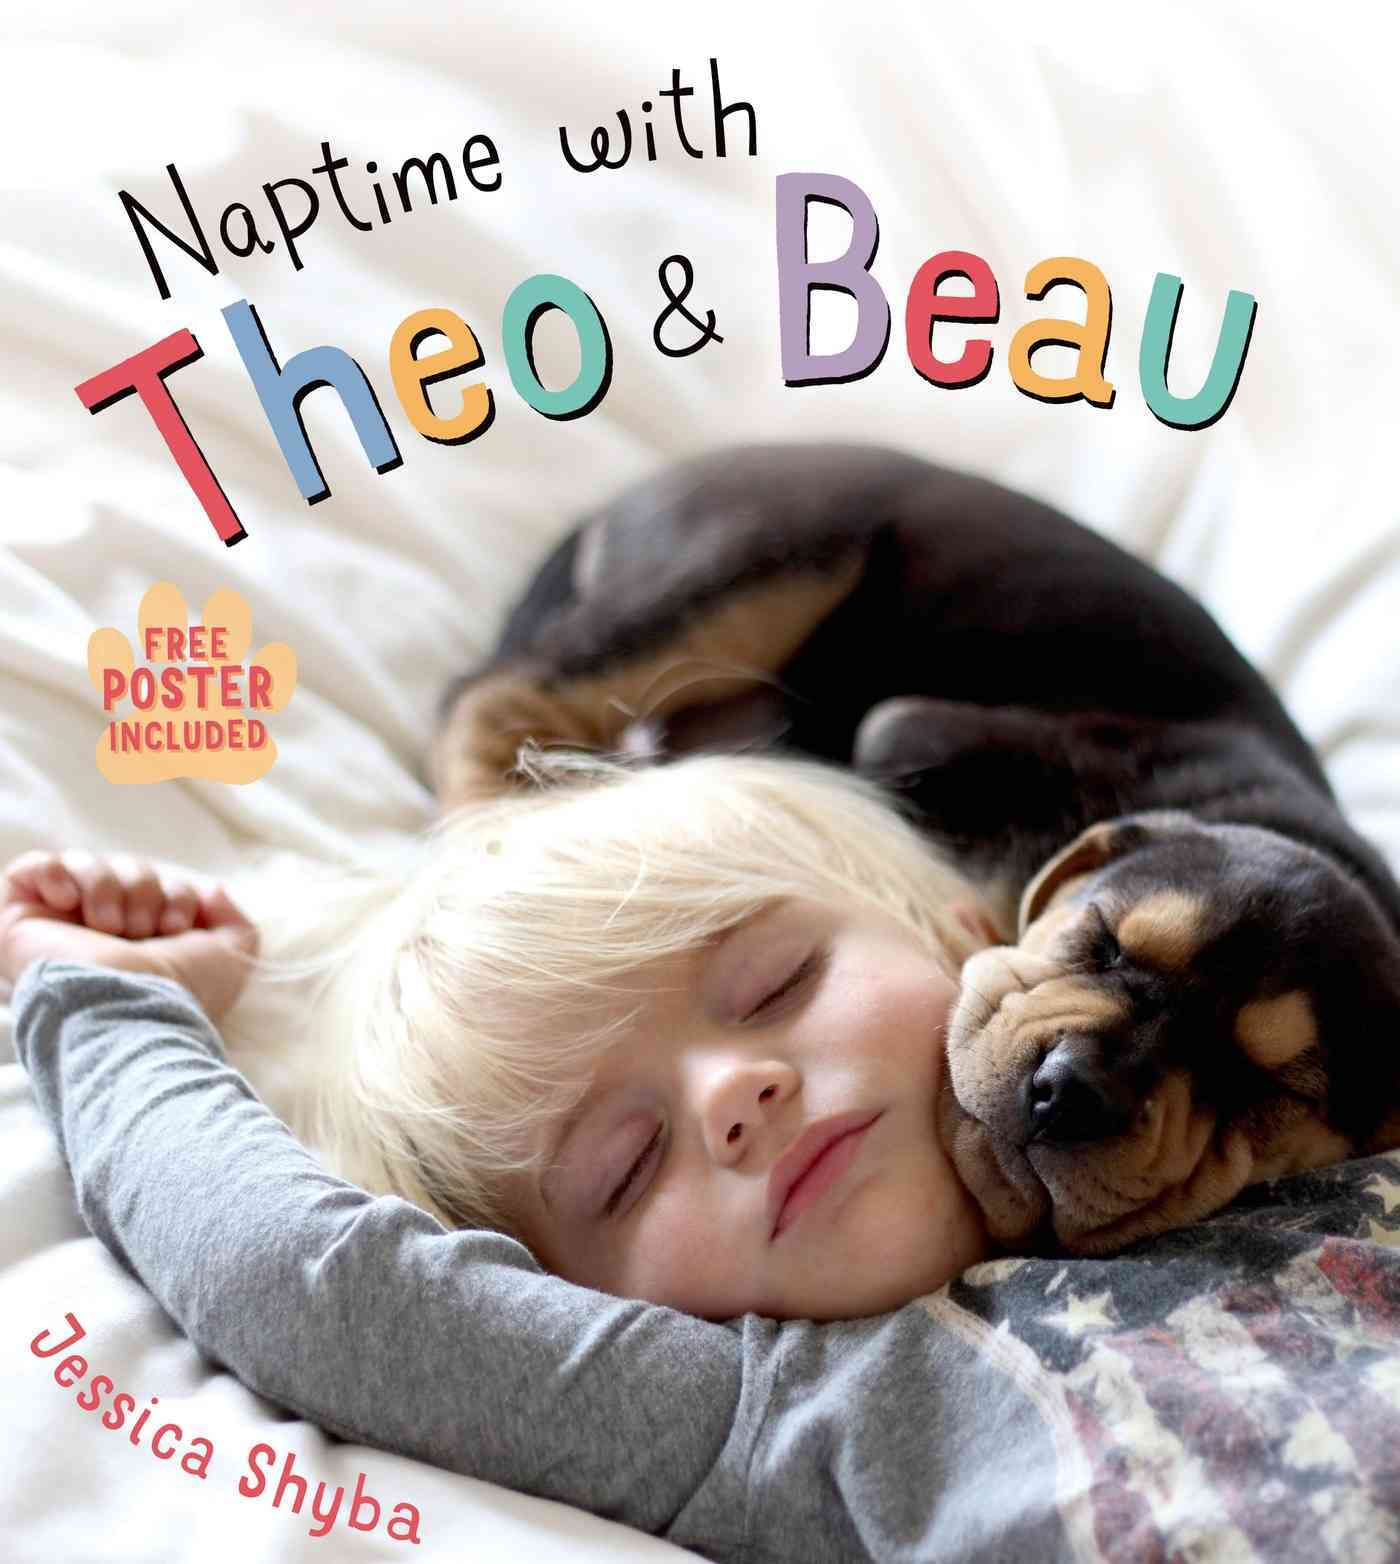 Naptime With Theo and Beau By Shyba, Jessica